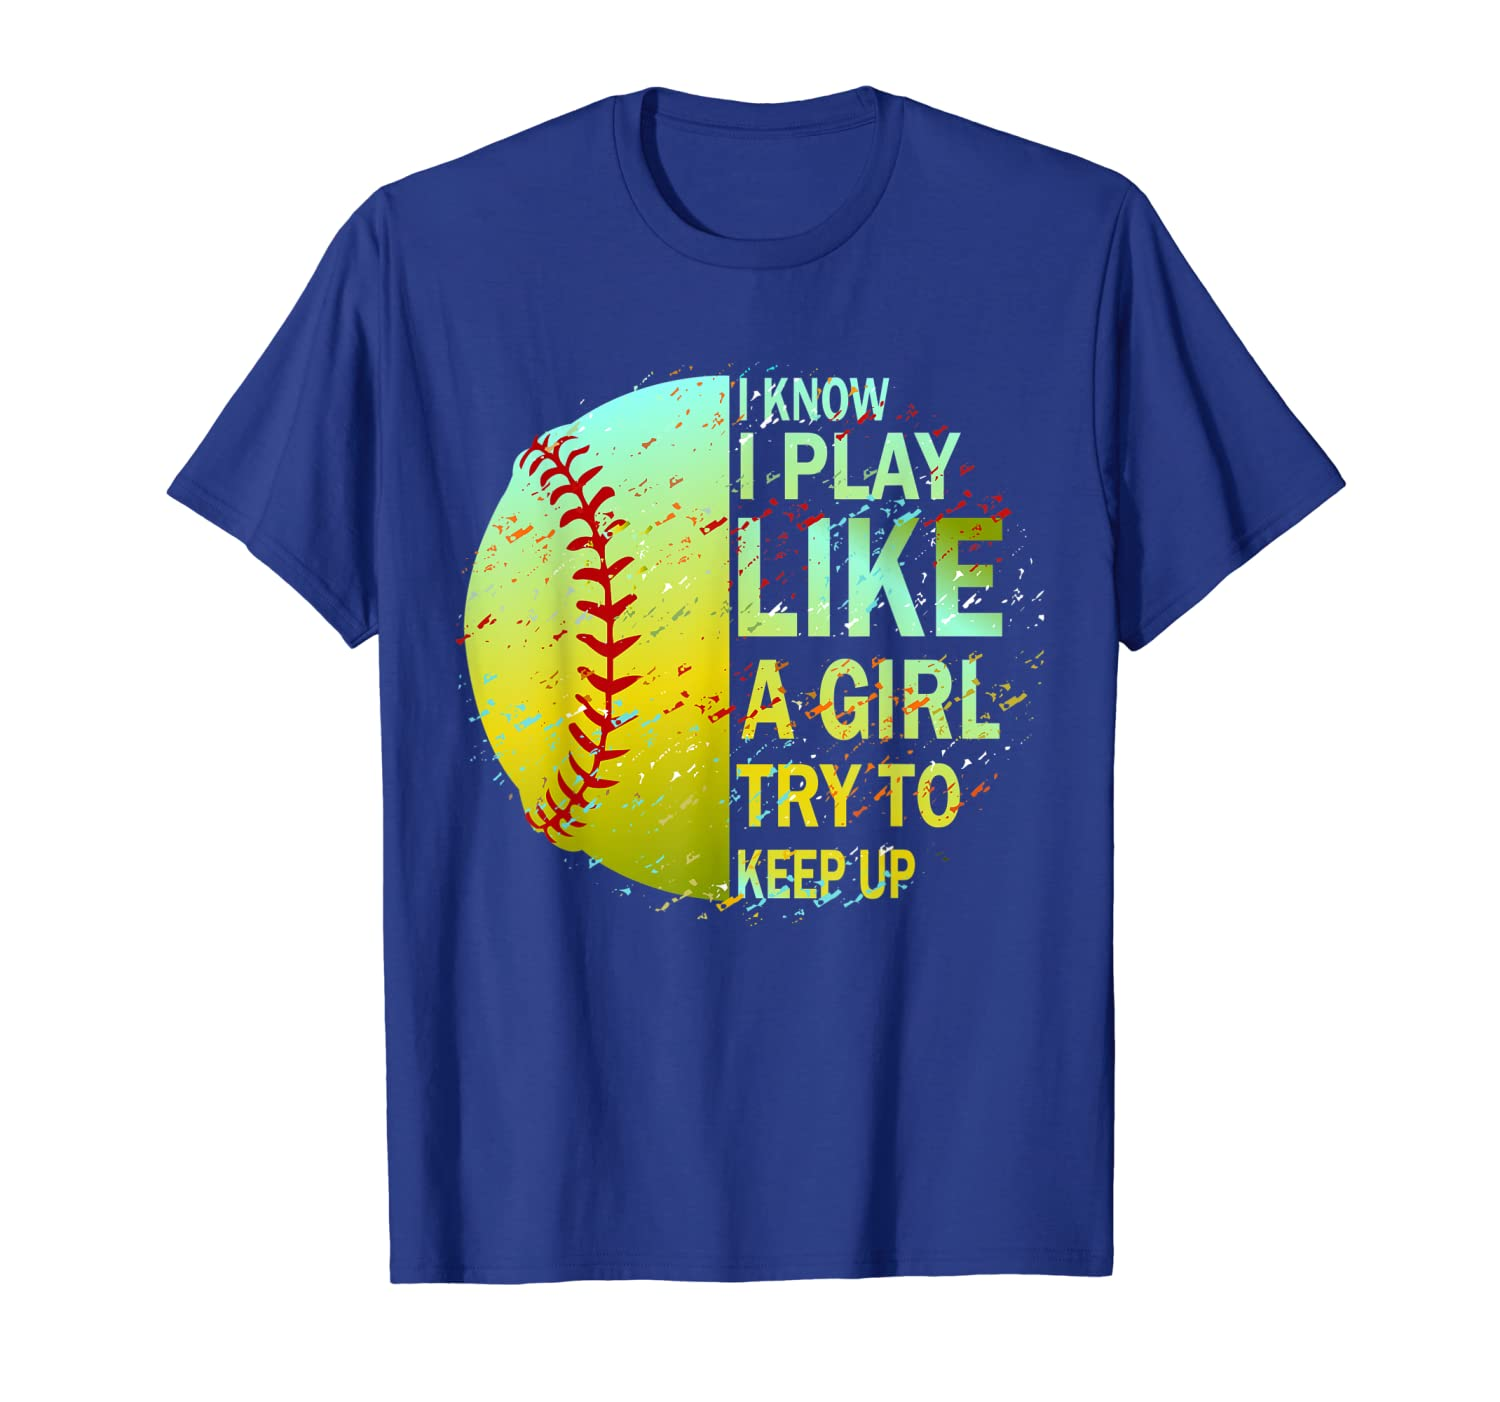 Softball Shirts for Girls  Softball T-Shirt Unisex Tshirt